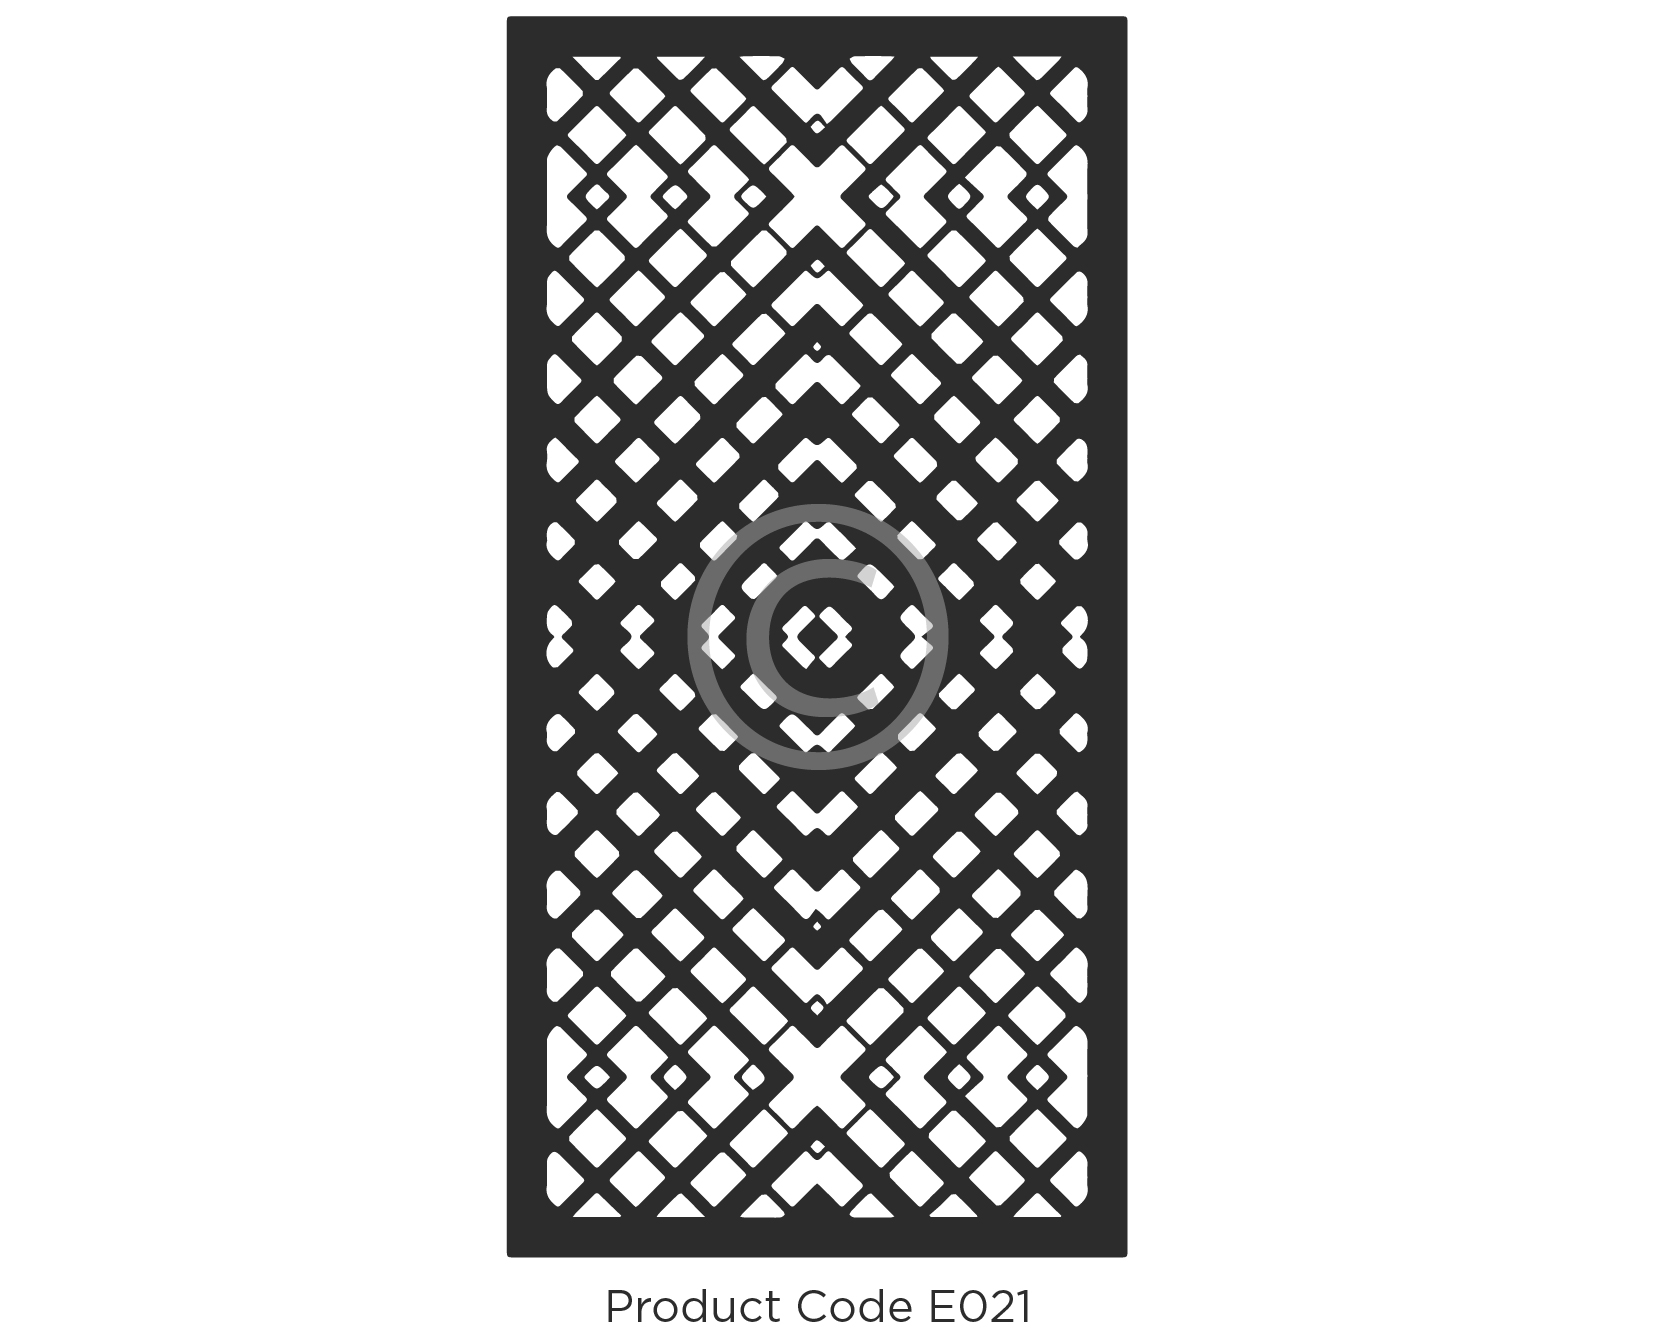 Elysium Decorative Screen Product Code E021 Geometric Design of a gradient effect with darker centre